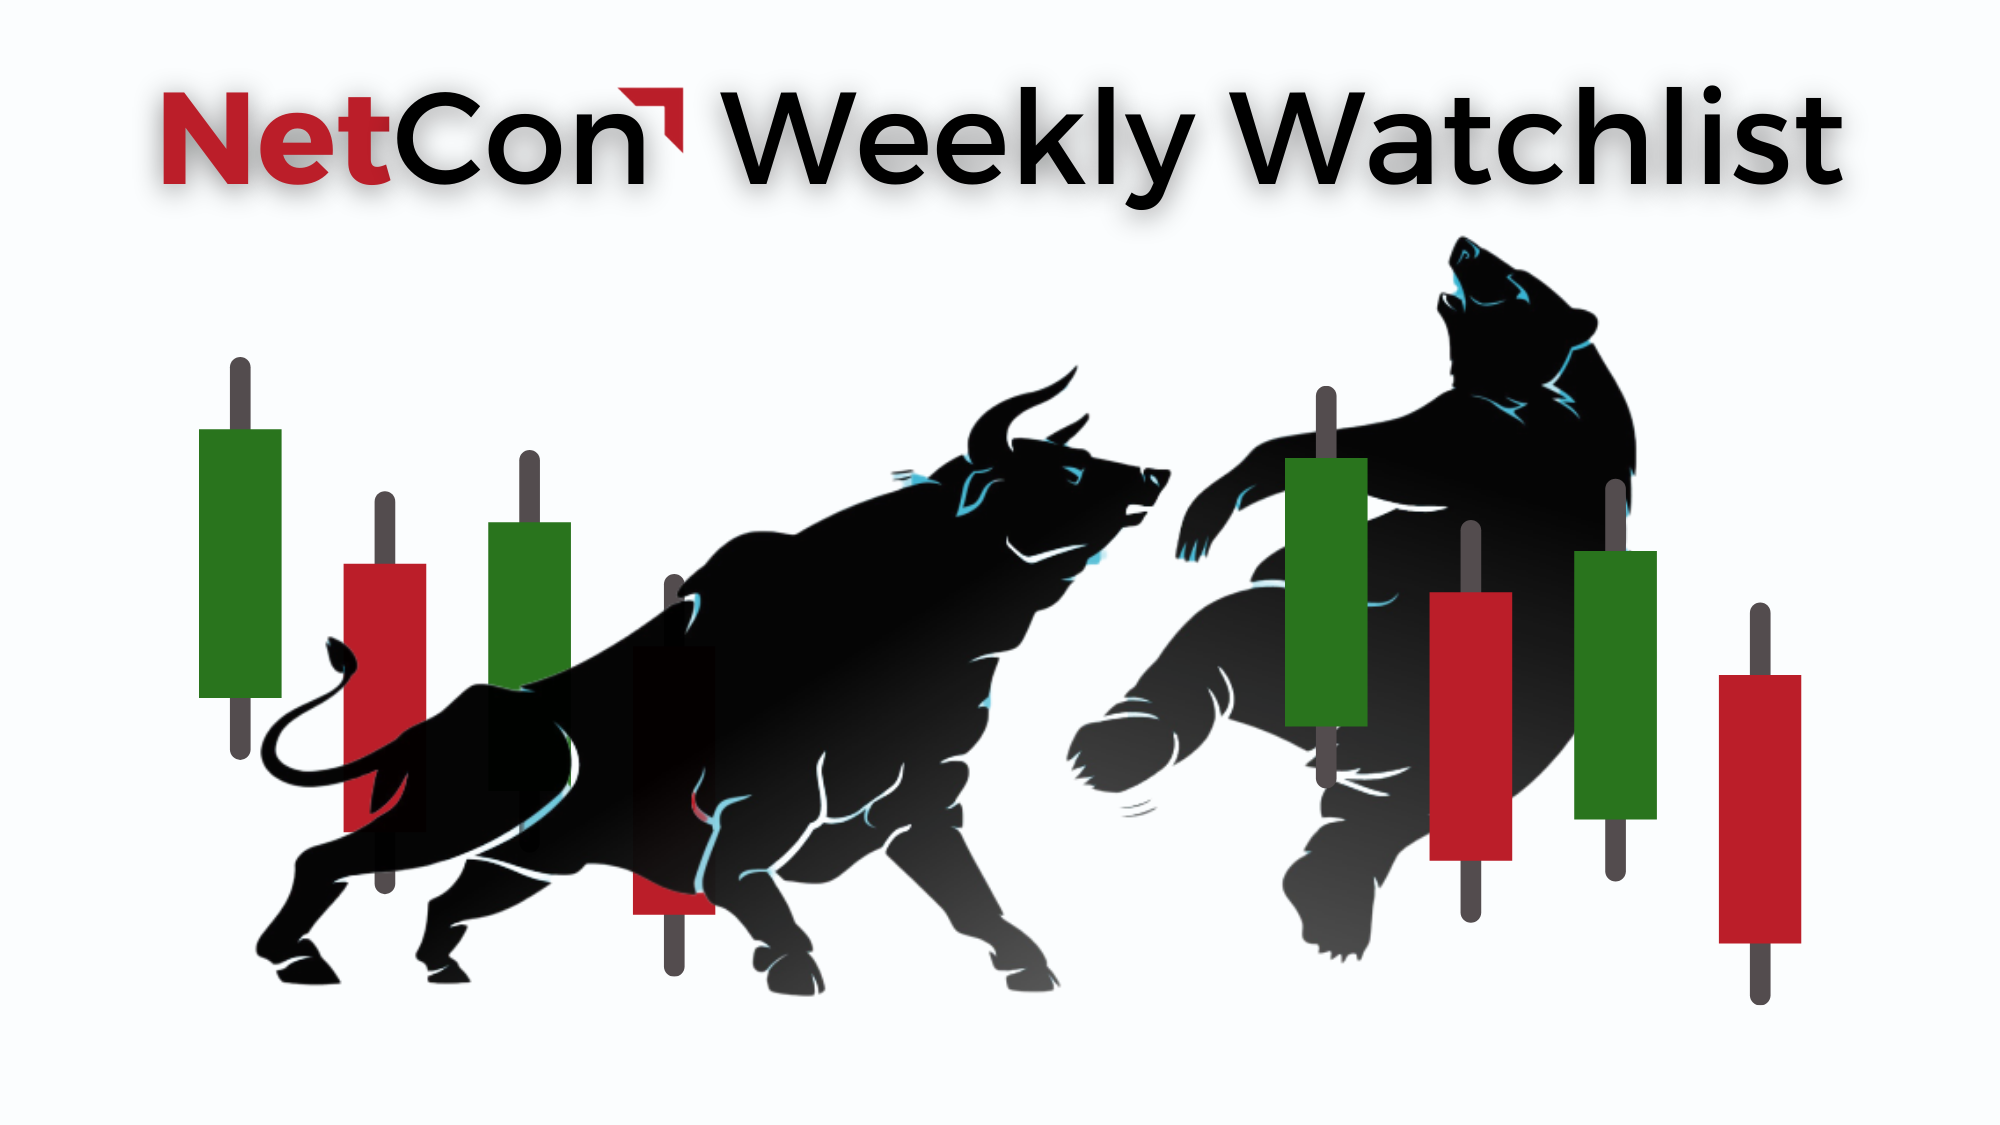 a bull knocking over a bear on the NetCon Weekly Watchlist